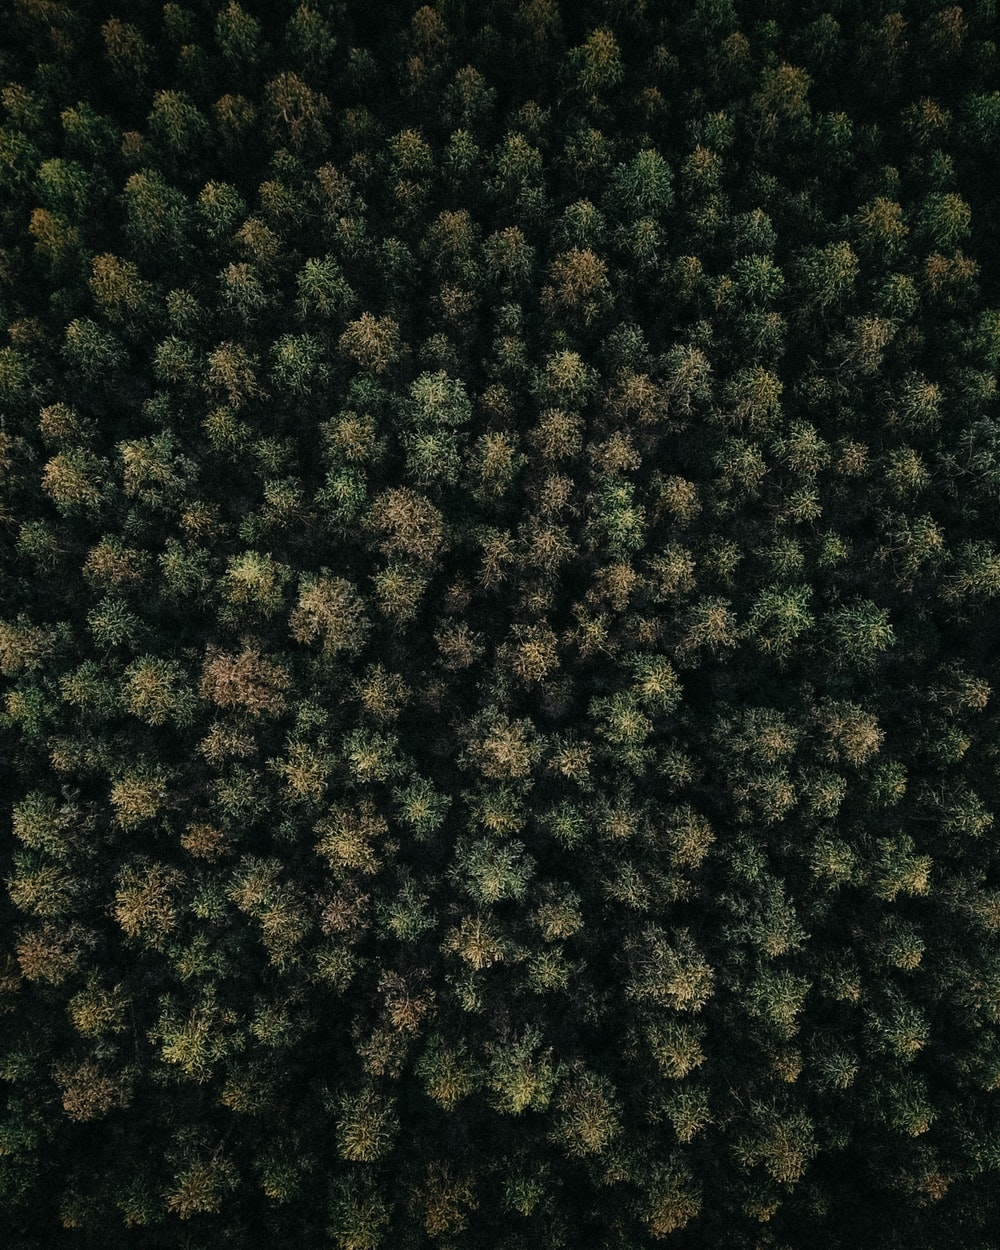 aerial photography of forest with tall trees